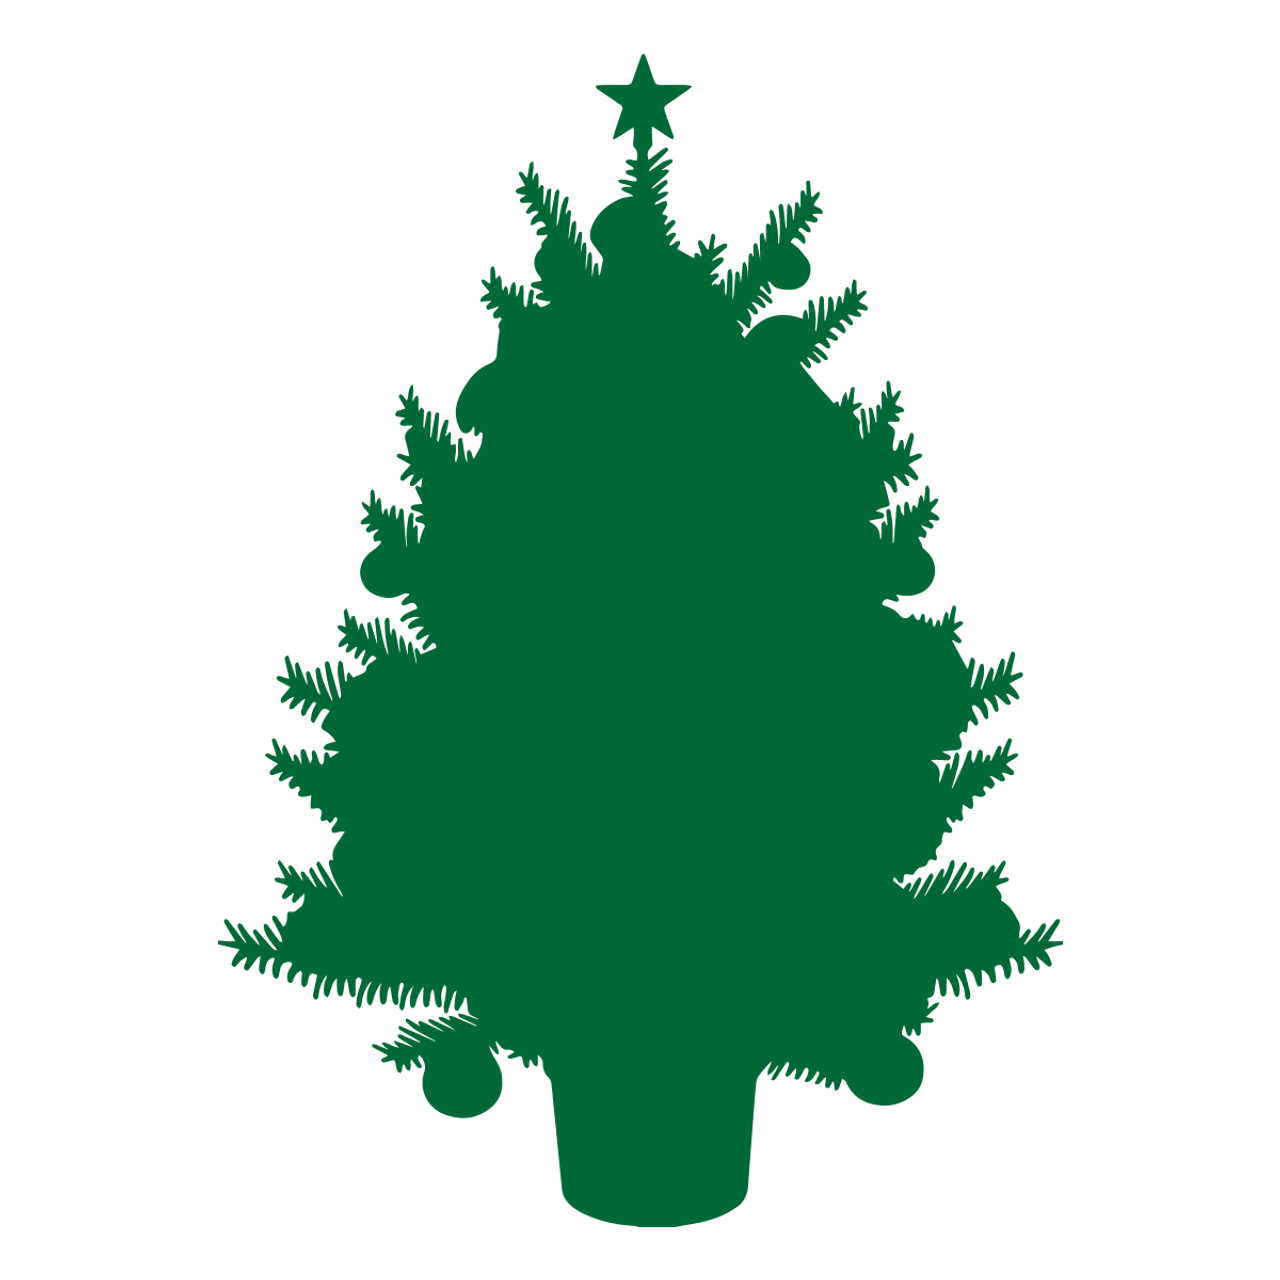 Christmas Tree Svg Svg Eps Png Dxf Cut Files For Cricut And Silhouette Cameo By Savanasdesign